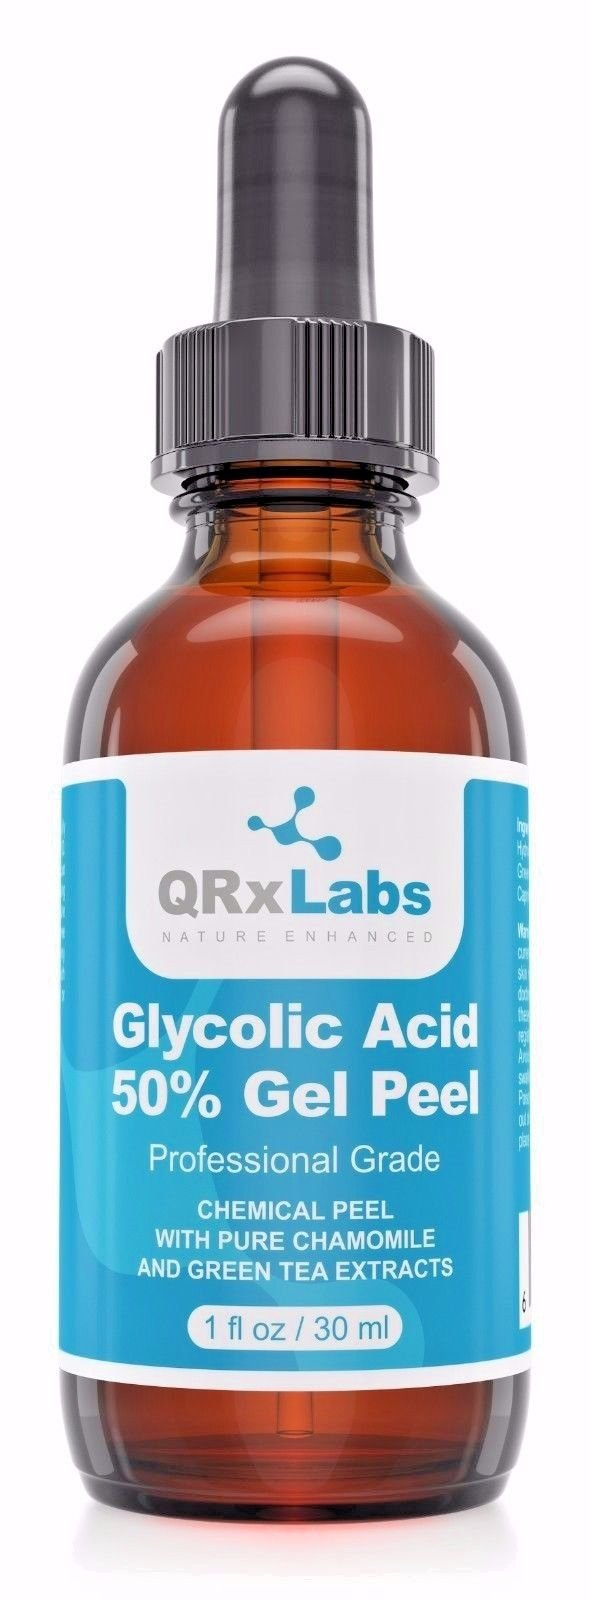 Glycolic Acid 50% Gel Peel with Chamomile and Green Tea Extracts – Professional Grade Chemical Face Peel for Acne Scars, Collagen Boost, Wrinkles, Fine Lines – Alpha Hydroxy Acid – 1 Bottle of 1 fl oz